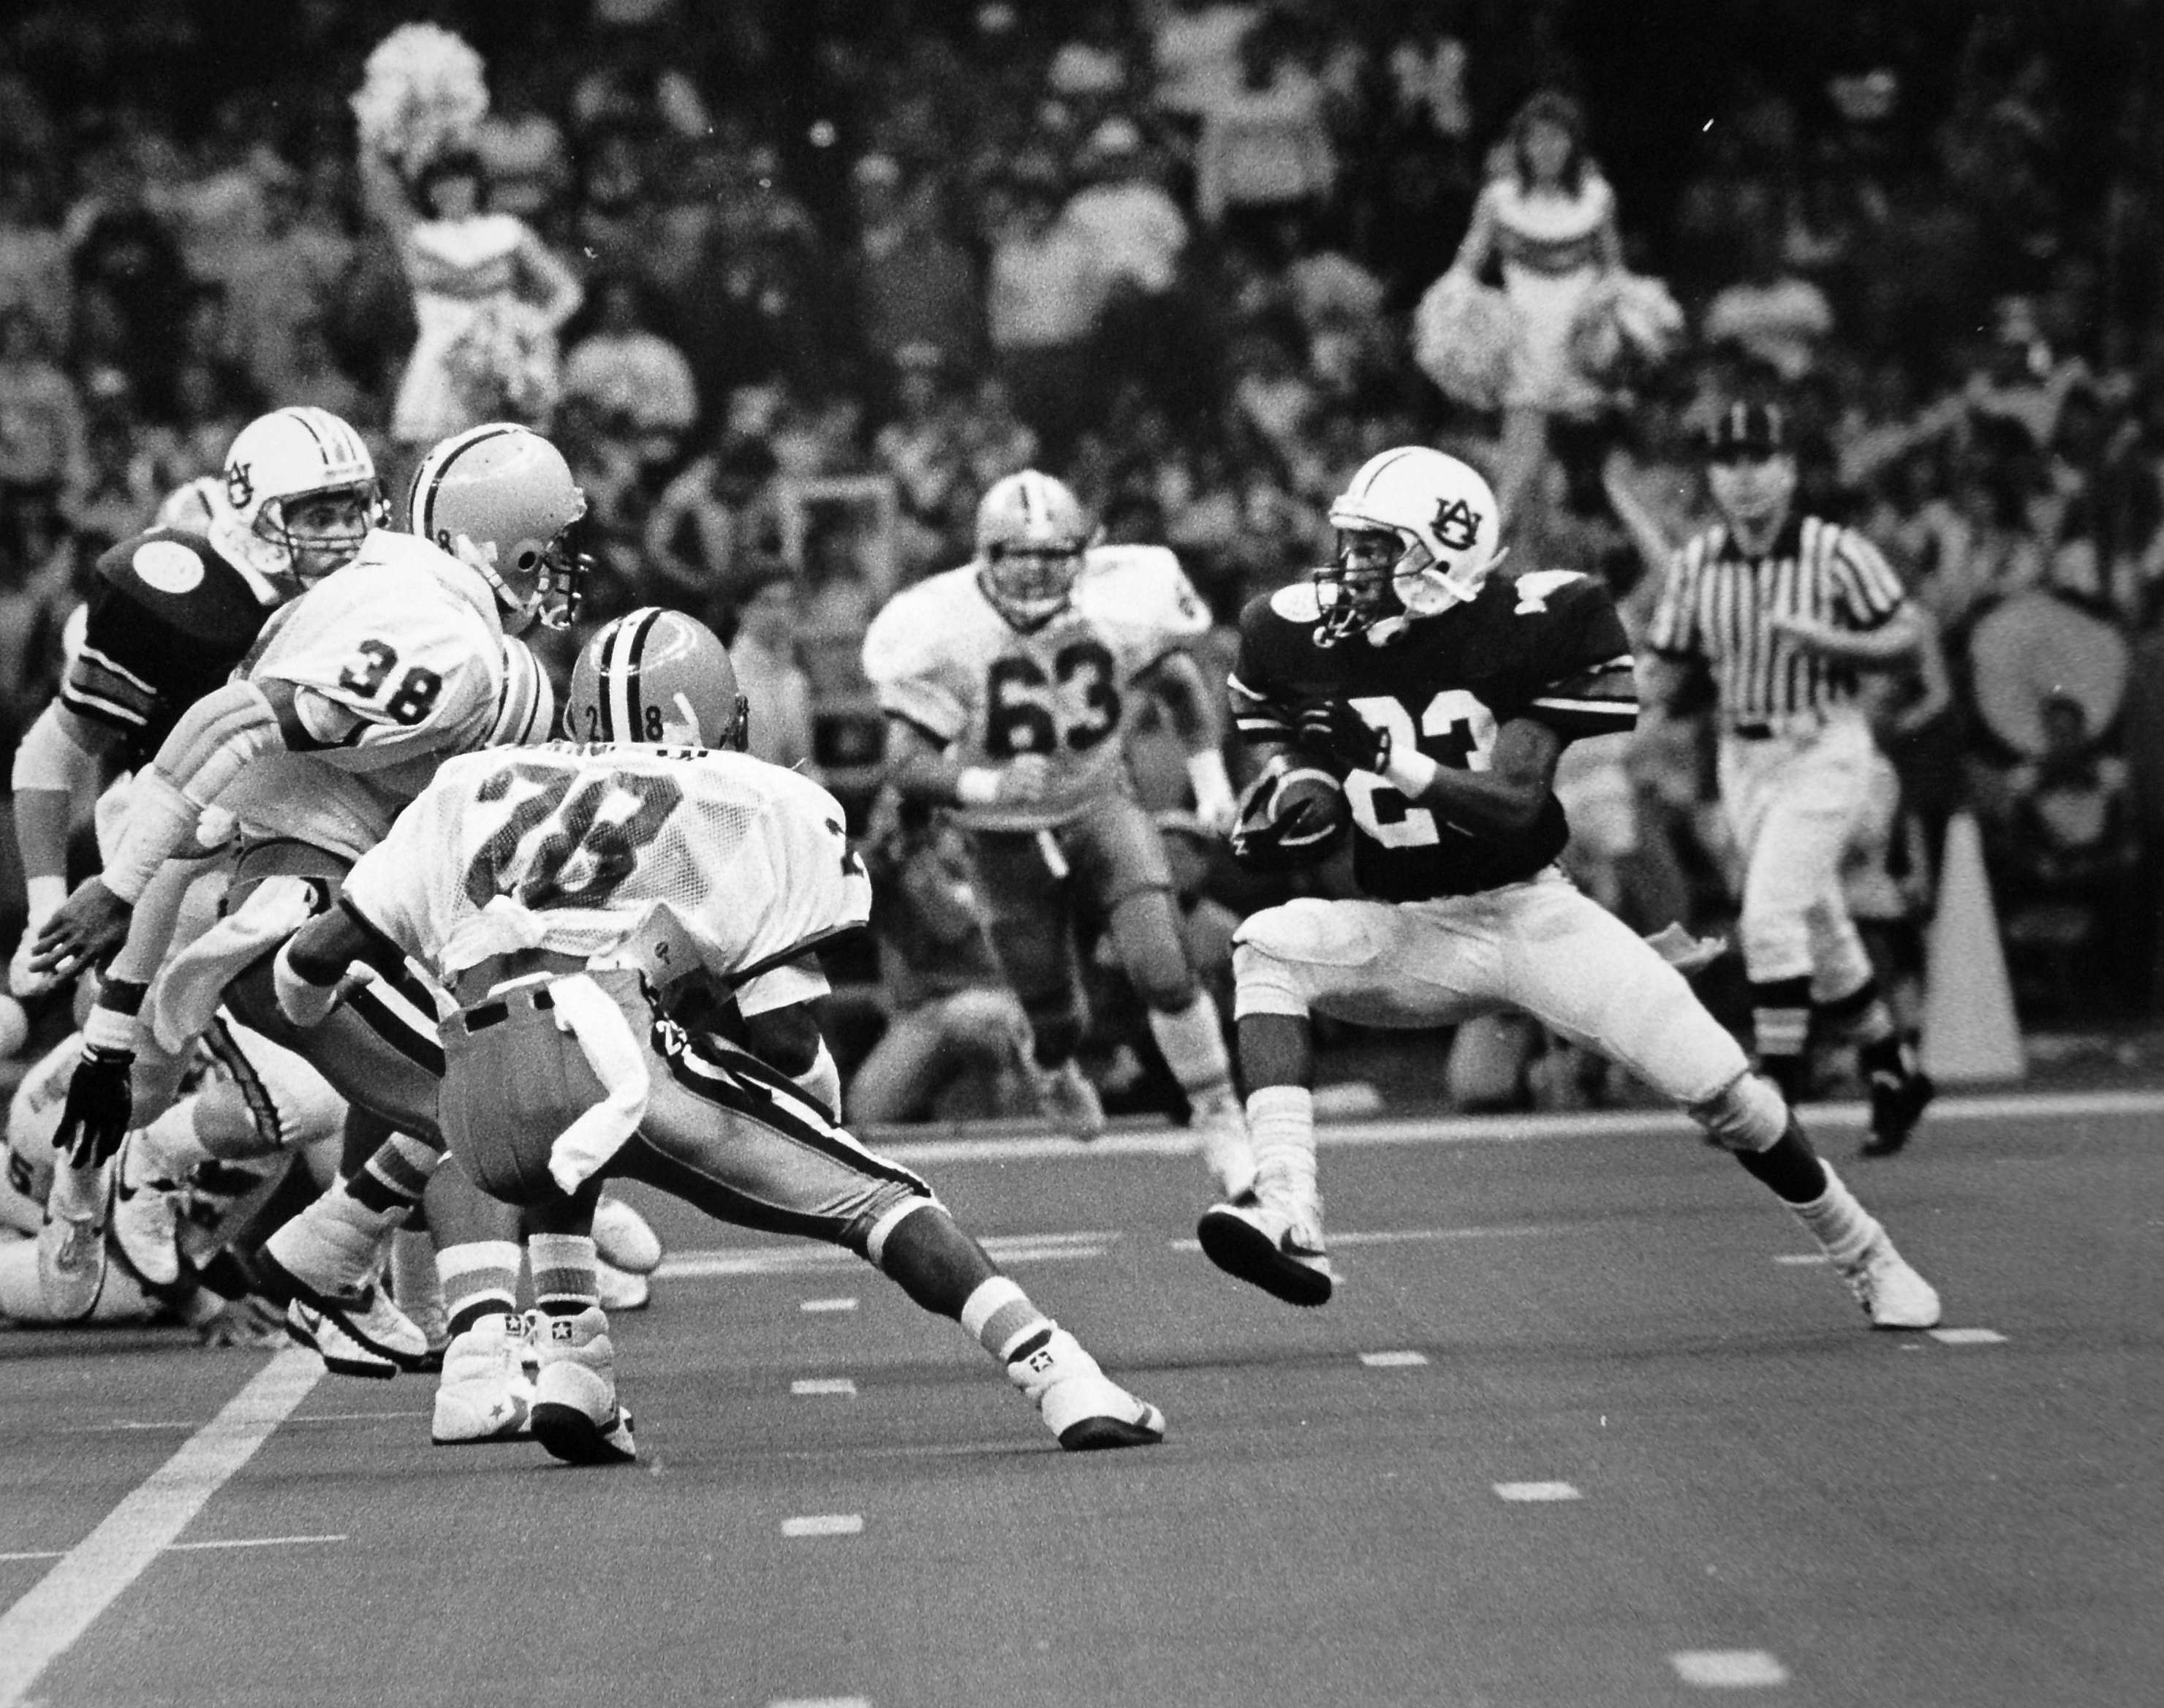 d98e4fa3a The players really wanted to go for it  - Auburn s 1988 Sugar Bowl ...